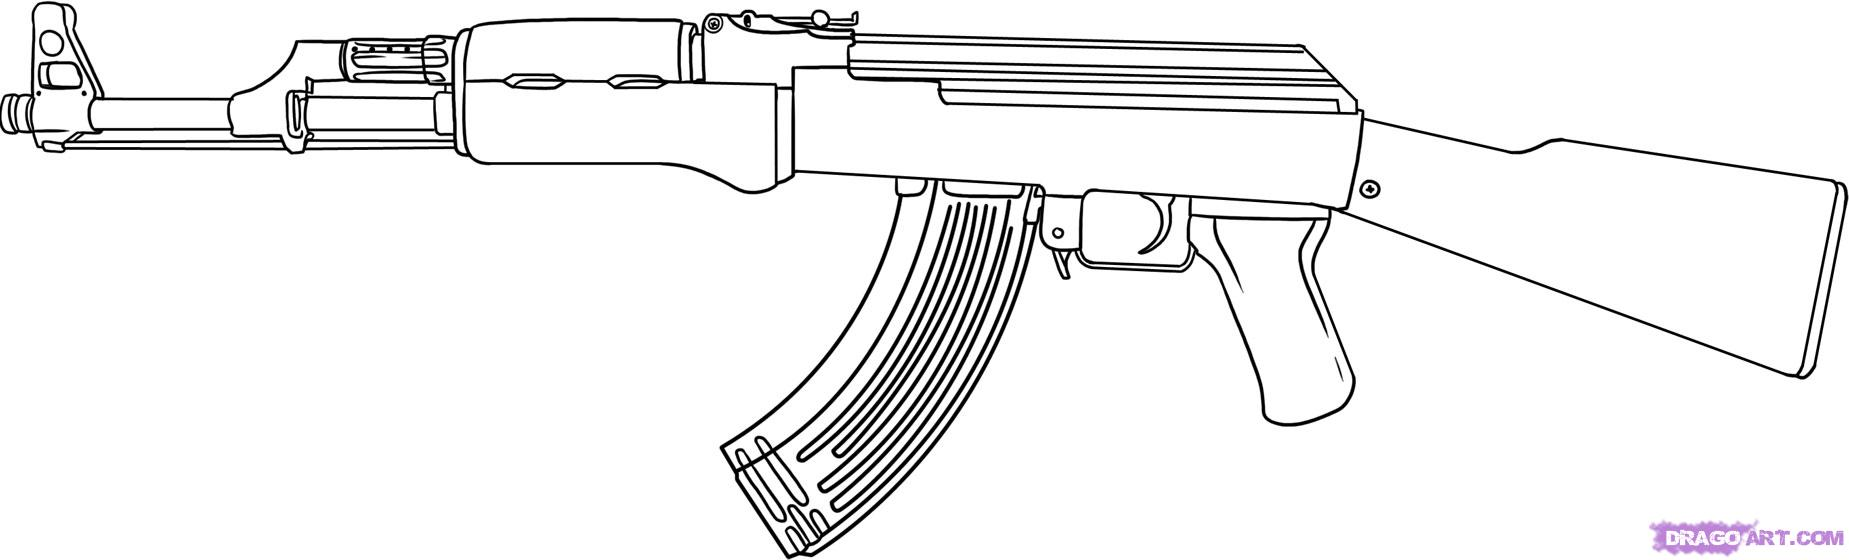 1849x560 How To Draw A Gun How To Draw An Assault Rifle Step 6 Bullets